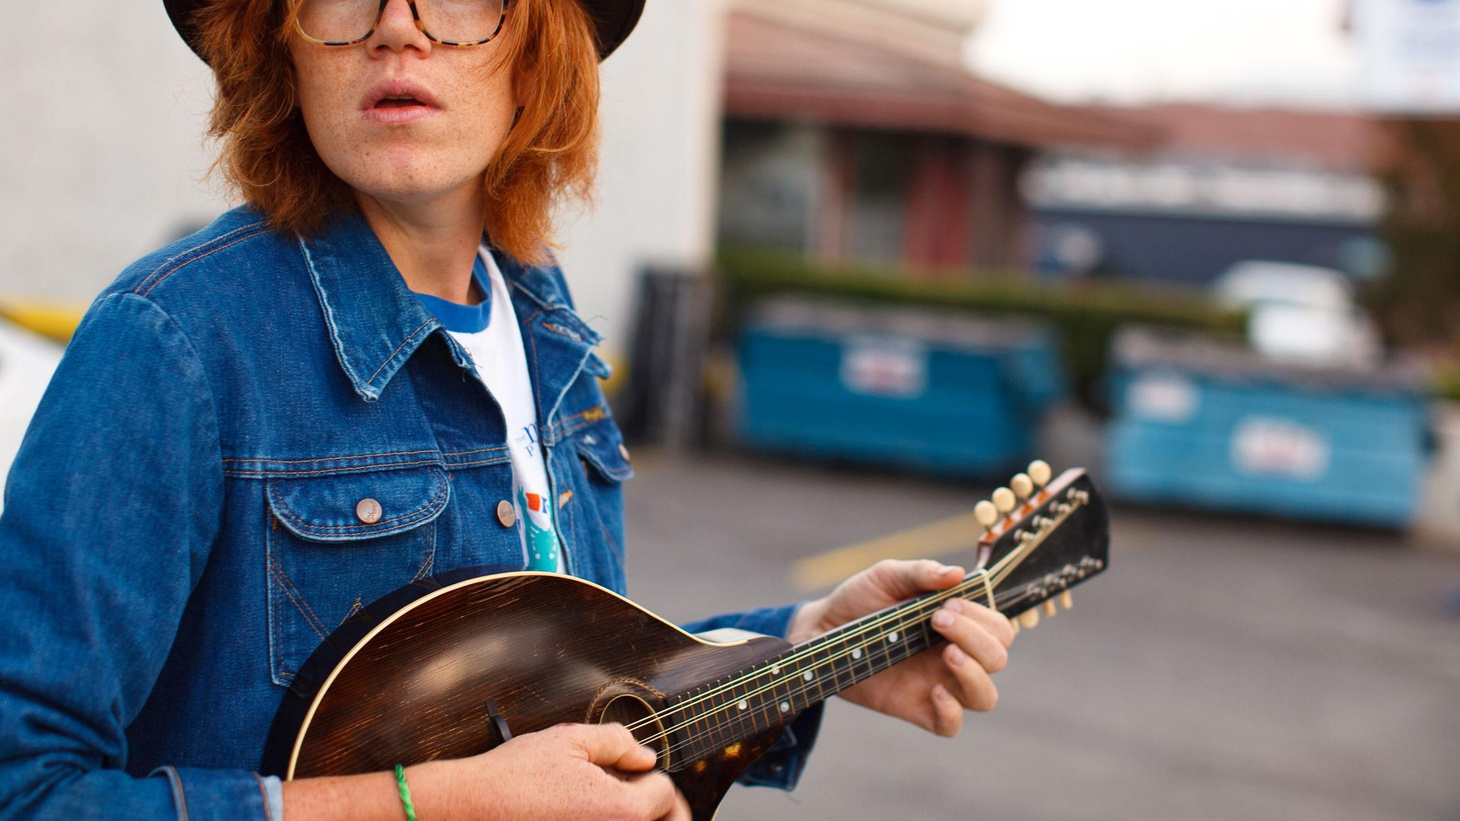 In his liner notes, Brett Dennen states his new CD is an ode to the wonderful feeling of love. The album is about having fun and letting go, even if it hurts.